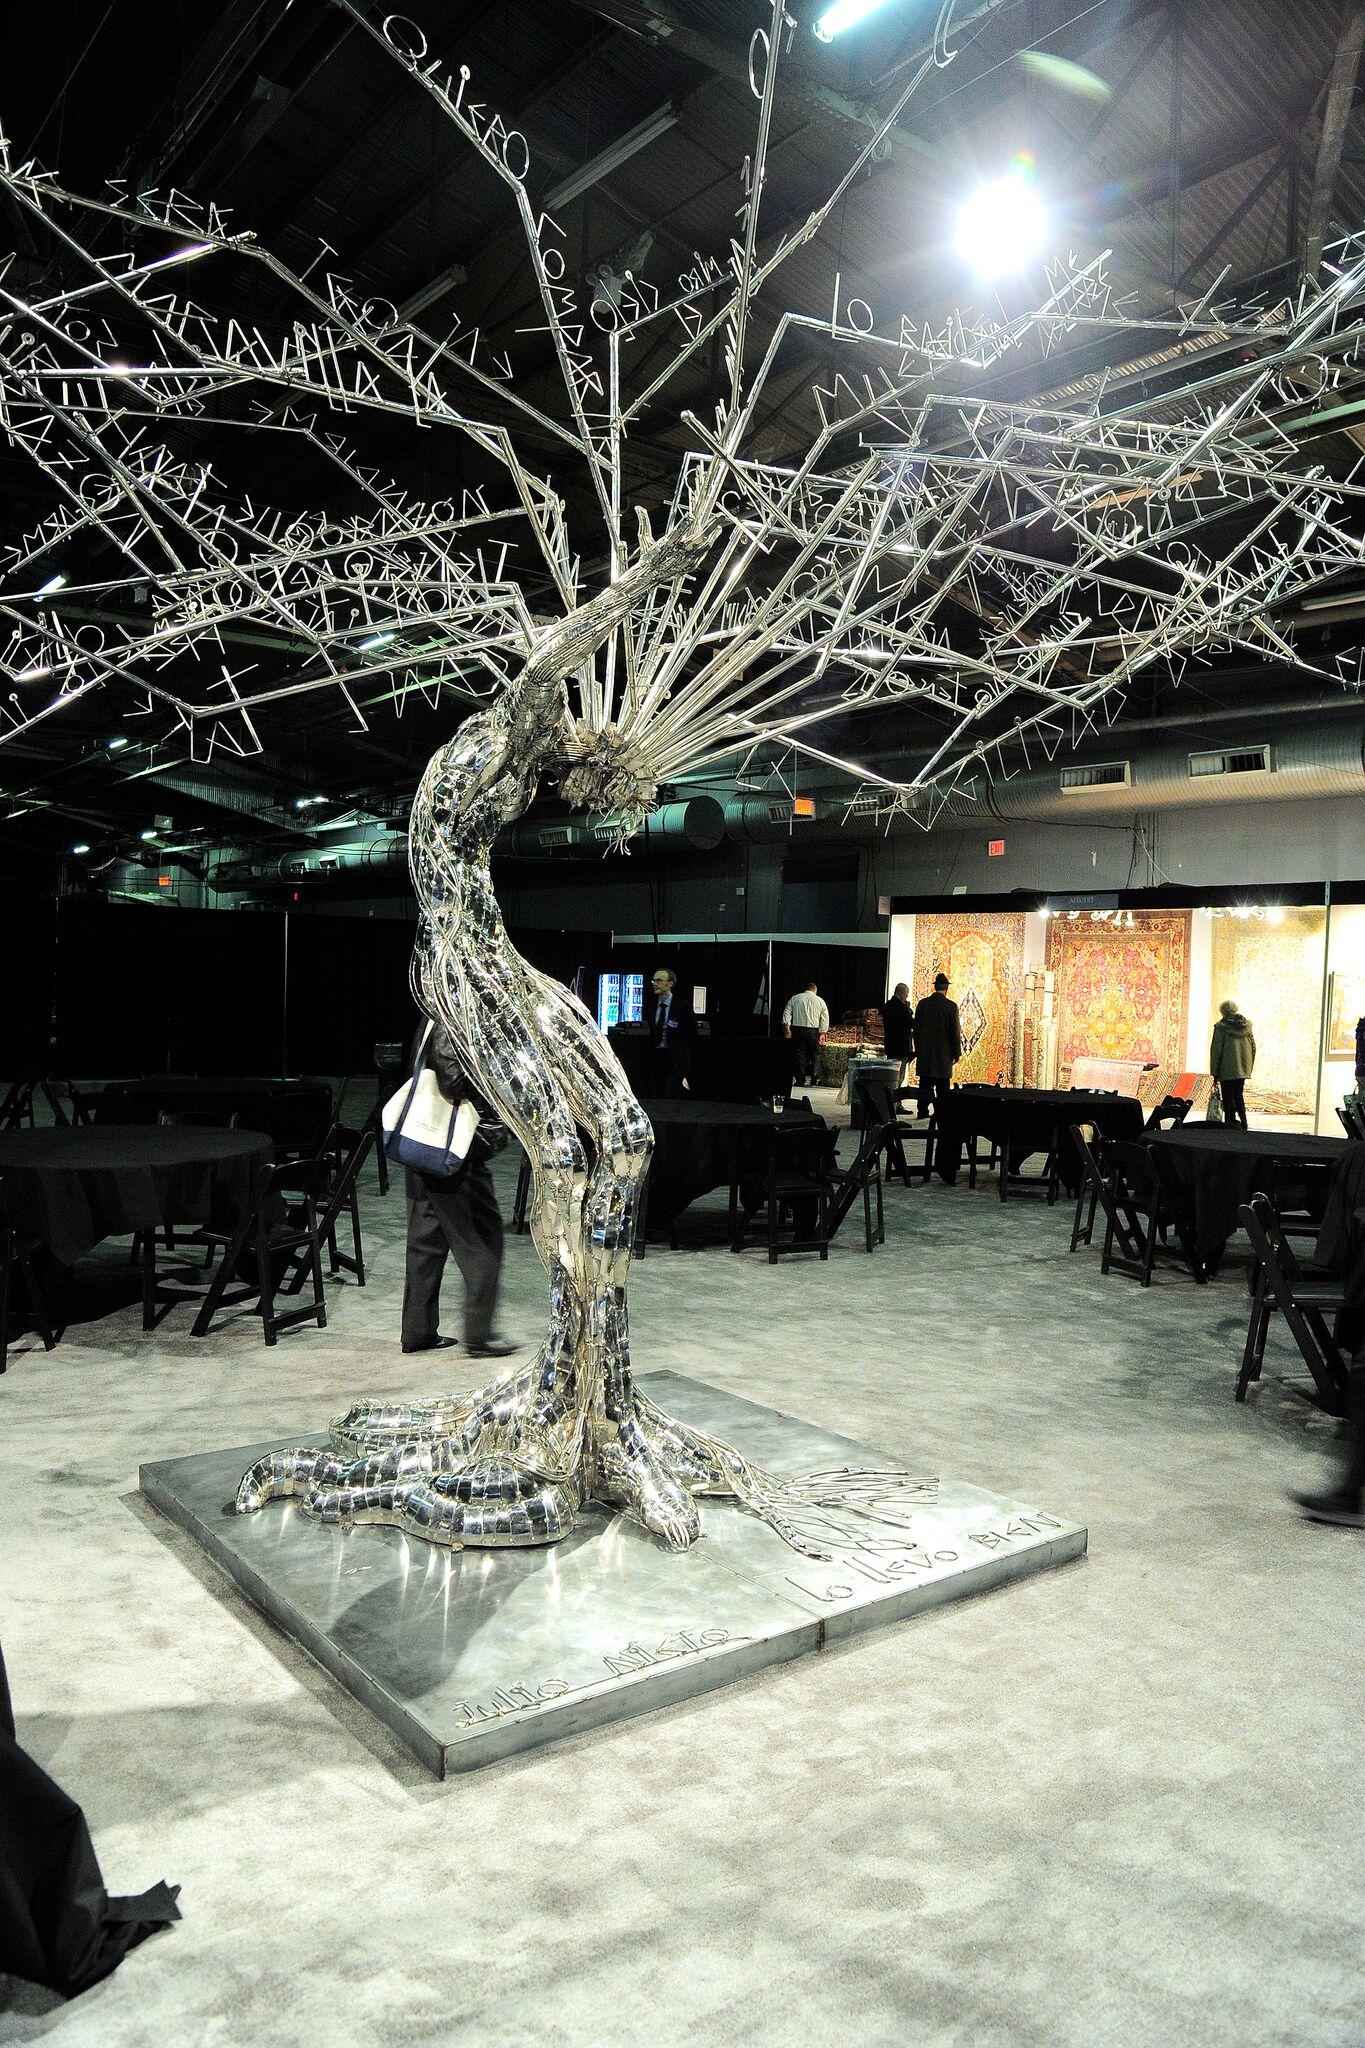 Palm Beach Show Group Hosts Opening Preview Party for The New York Art, Antique & Jewelry Show benefitting Lauren Bush Lauren's FEED Foundation